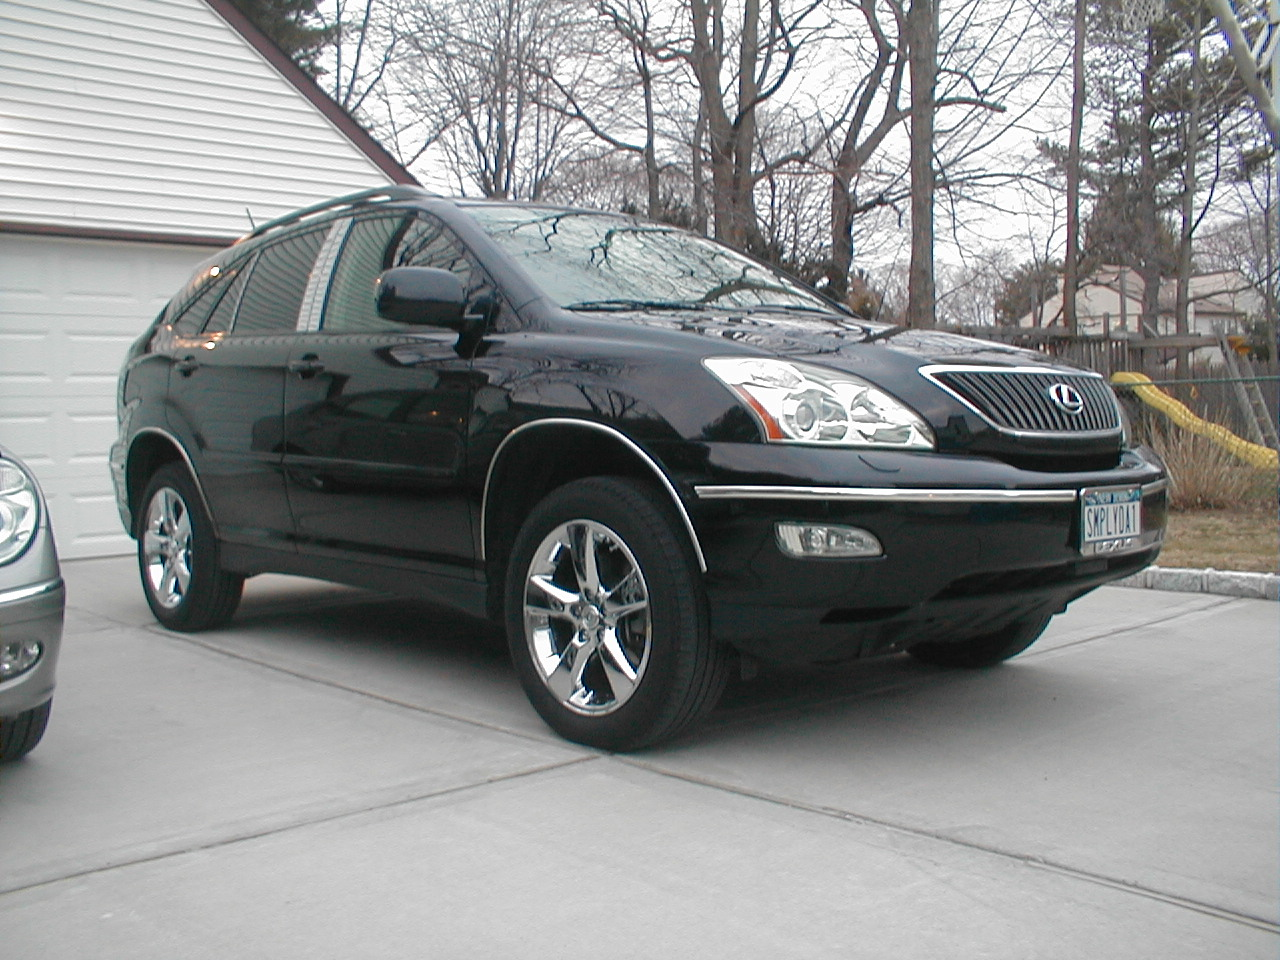 Picture of 2004 Lexus RX 330 Base AWD